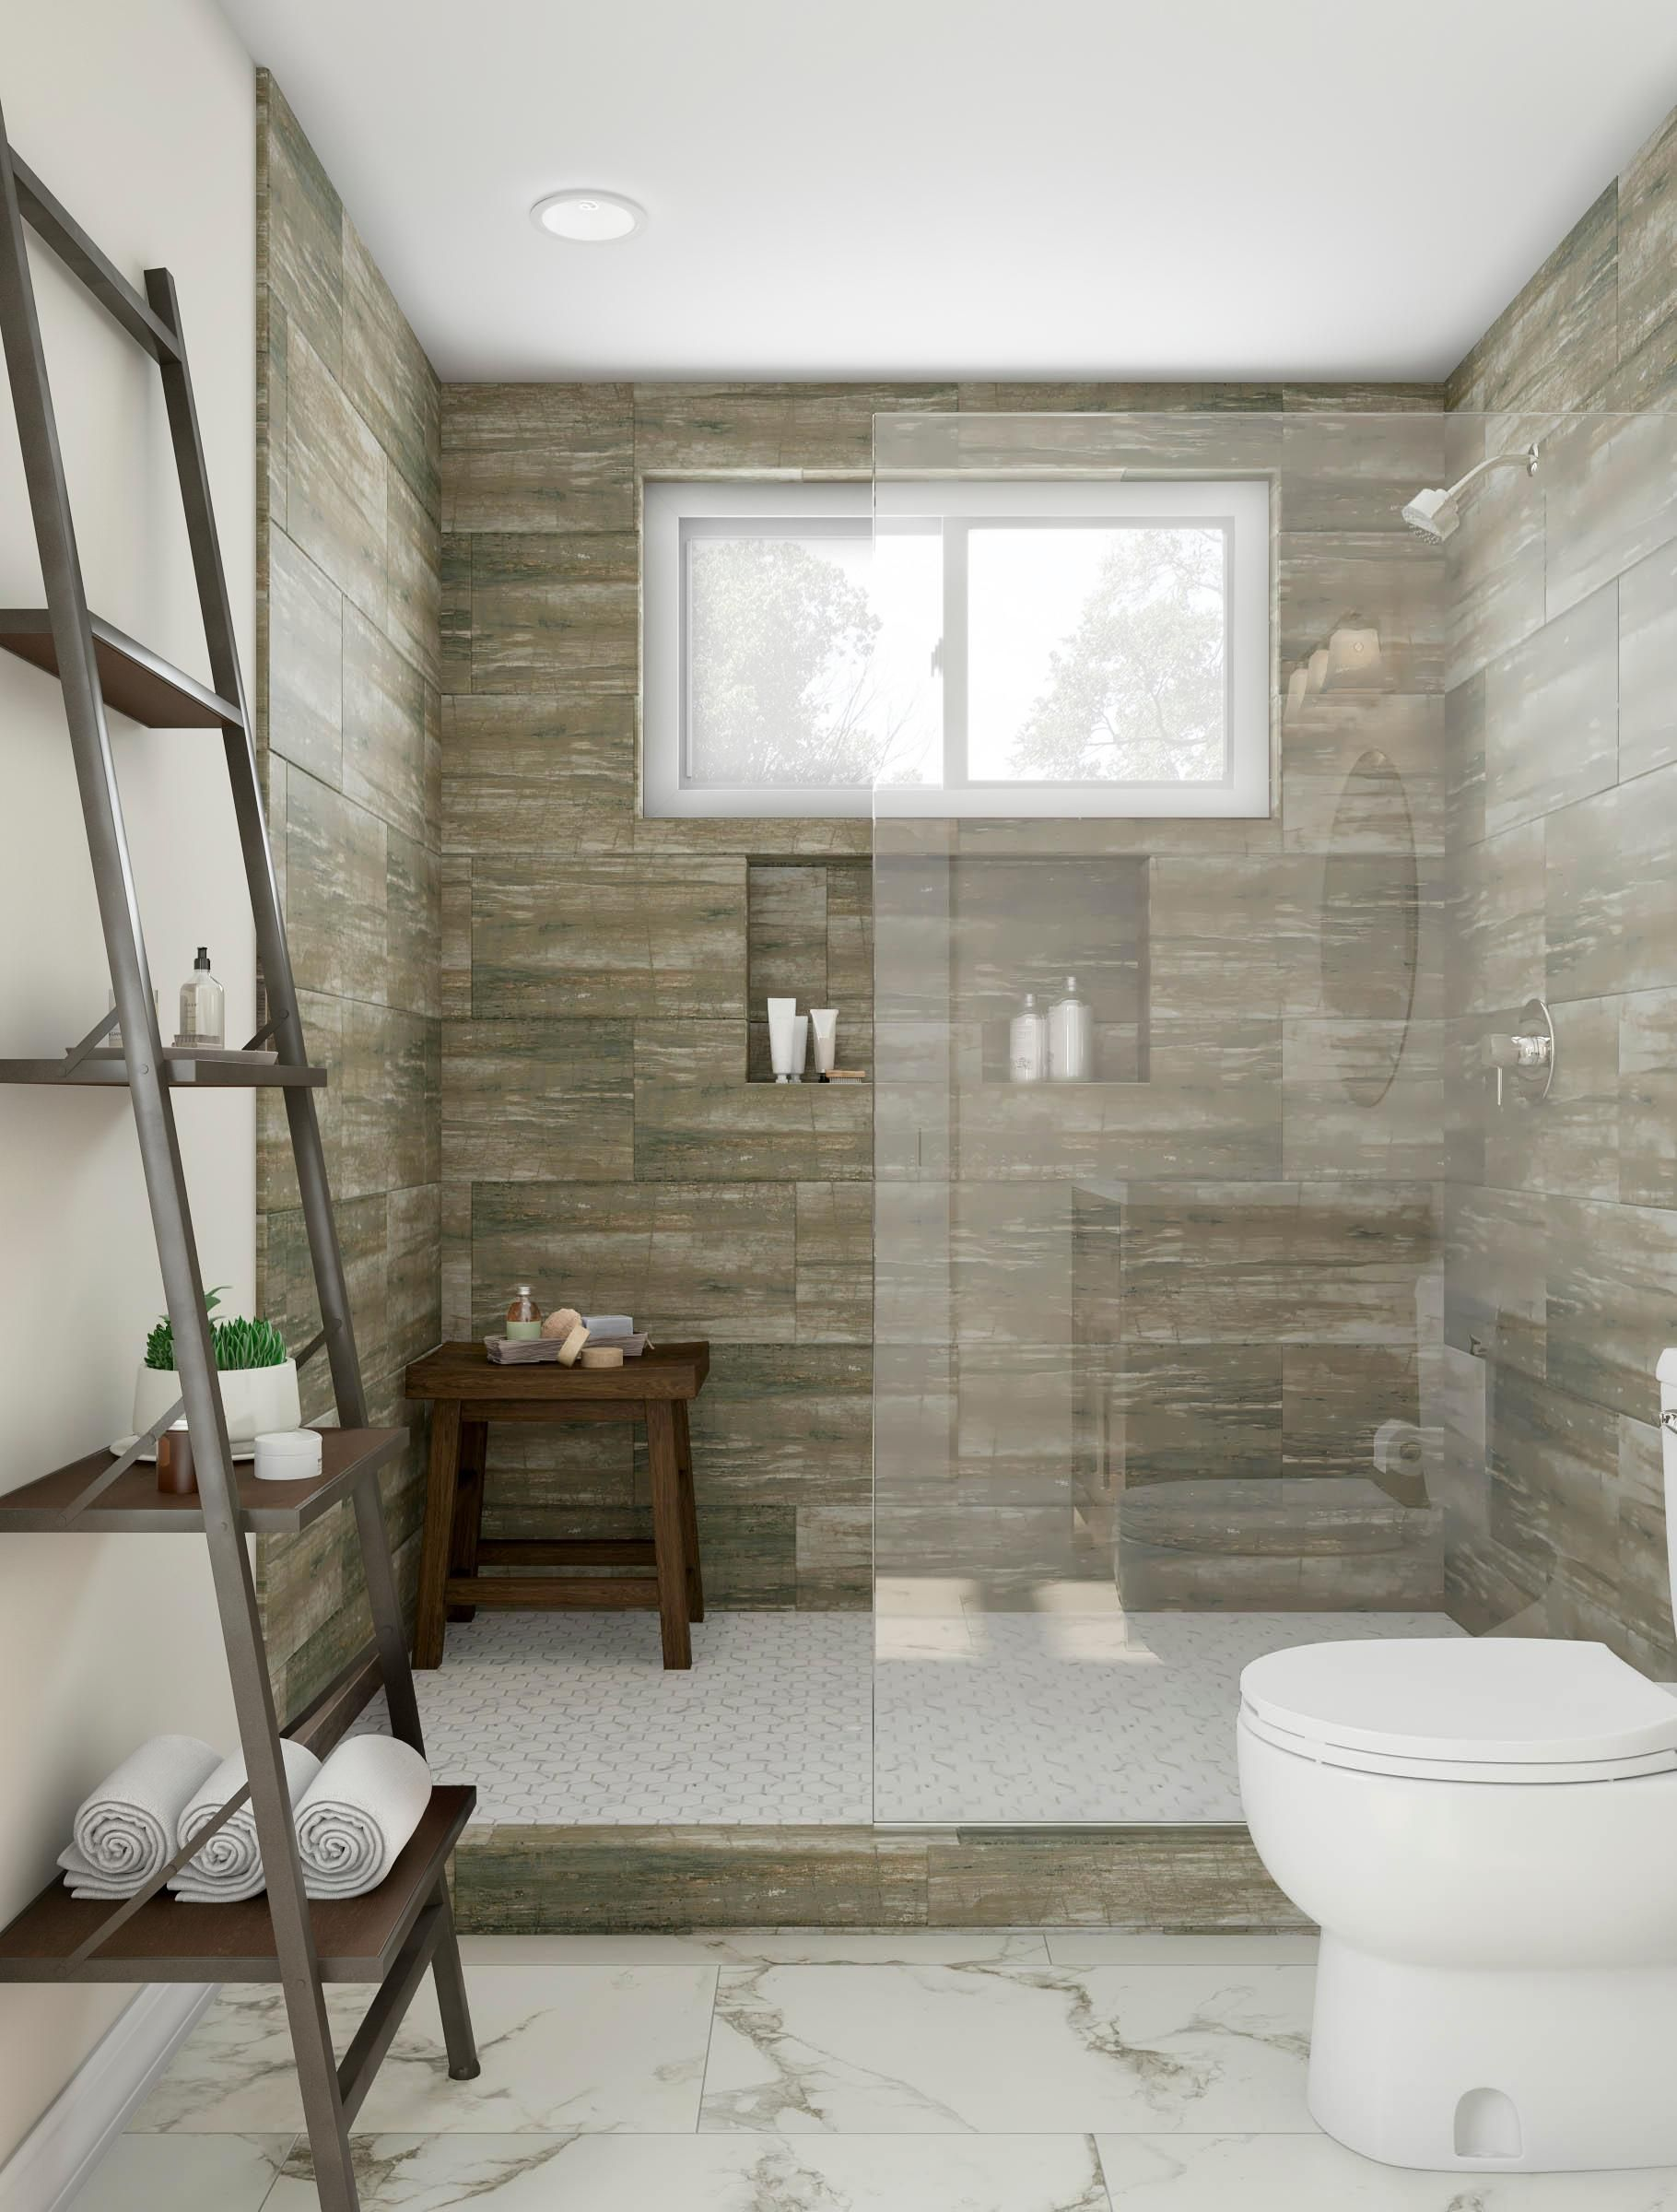 Replicate the feeling of showering outdoors with a spalike